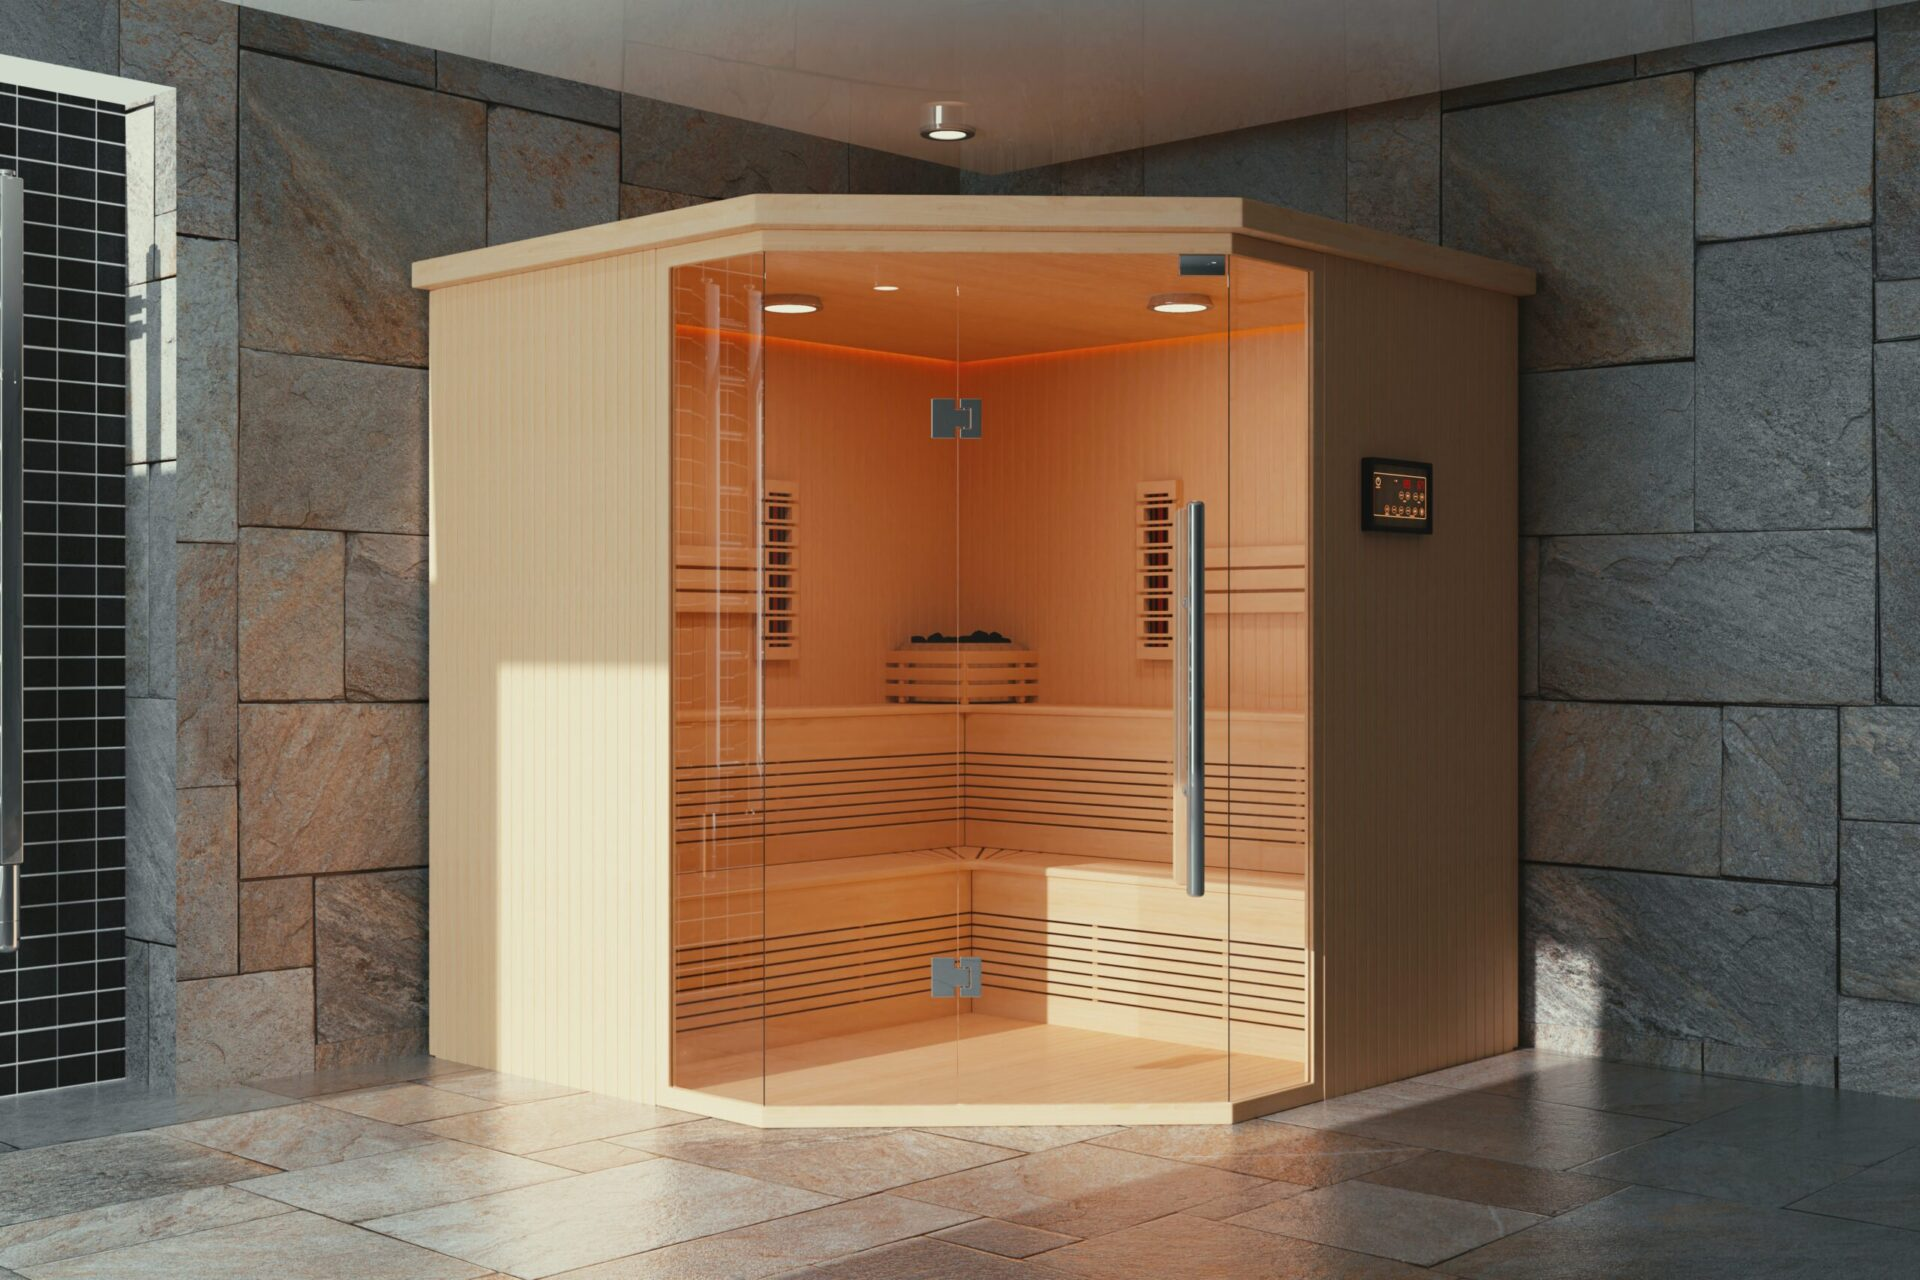 Classic Wooden Infrarered Finnish Sauna Cabin in Bathroom Interior extreme closeup